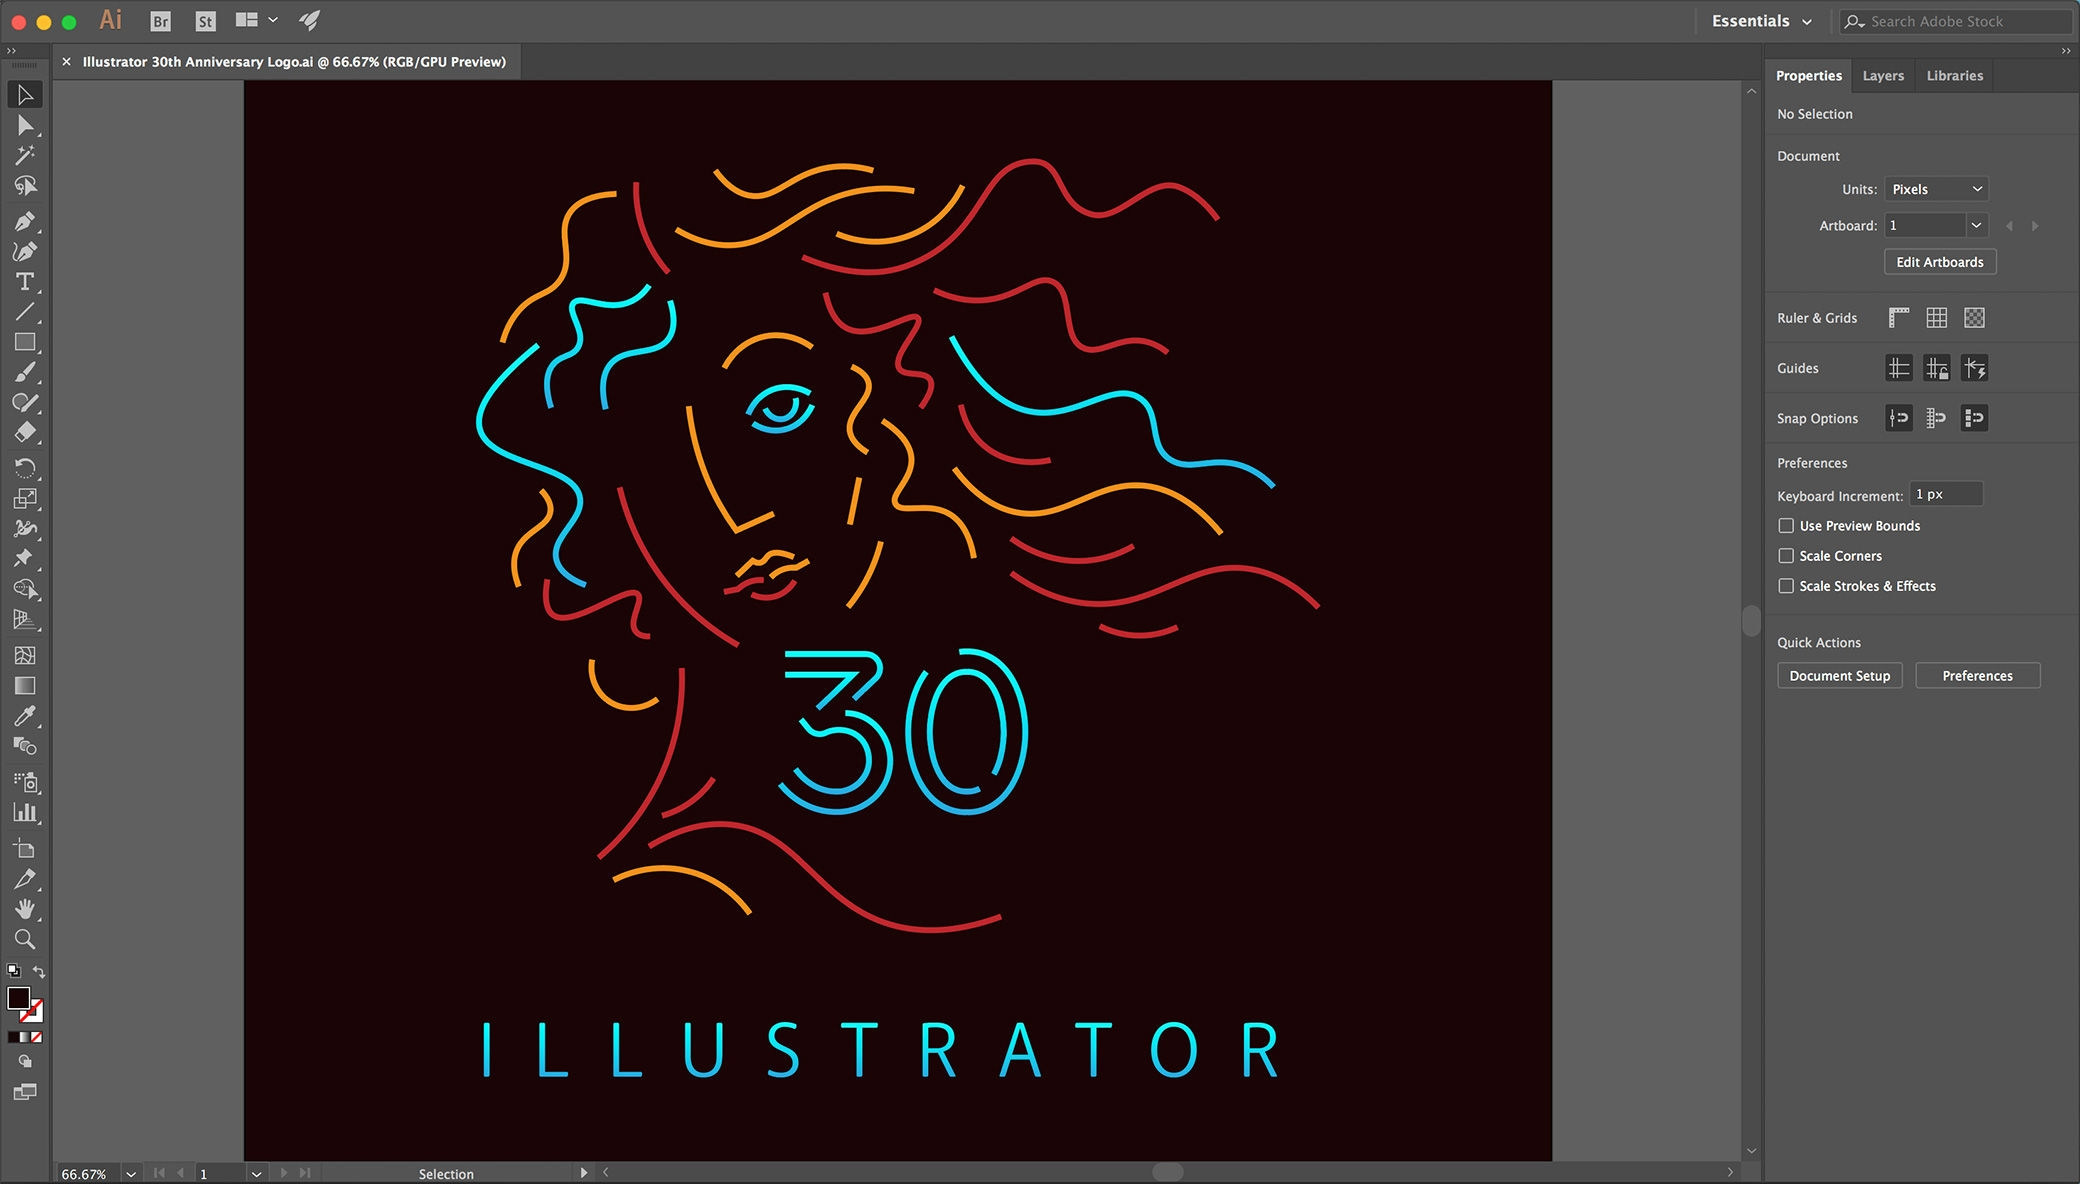 Adobe releases creative cloud 2018 digital arts adobe releases creative cloud 2018 with new illustrator photoshop indesign xd dimension after effects premiere pro lightroom more baditri Image collections